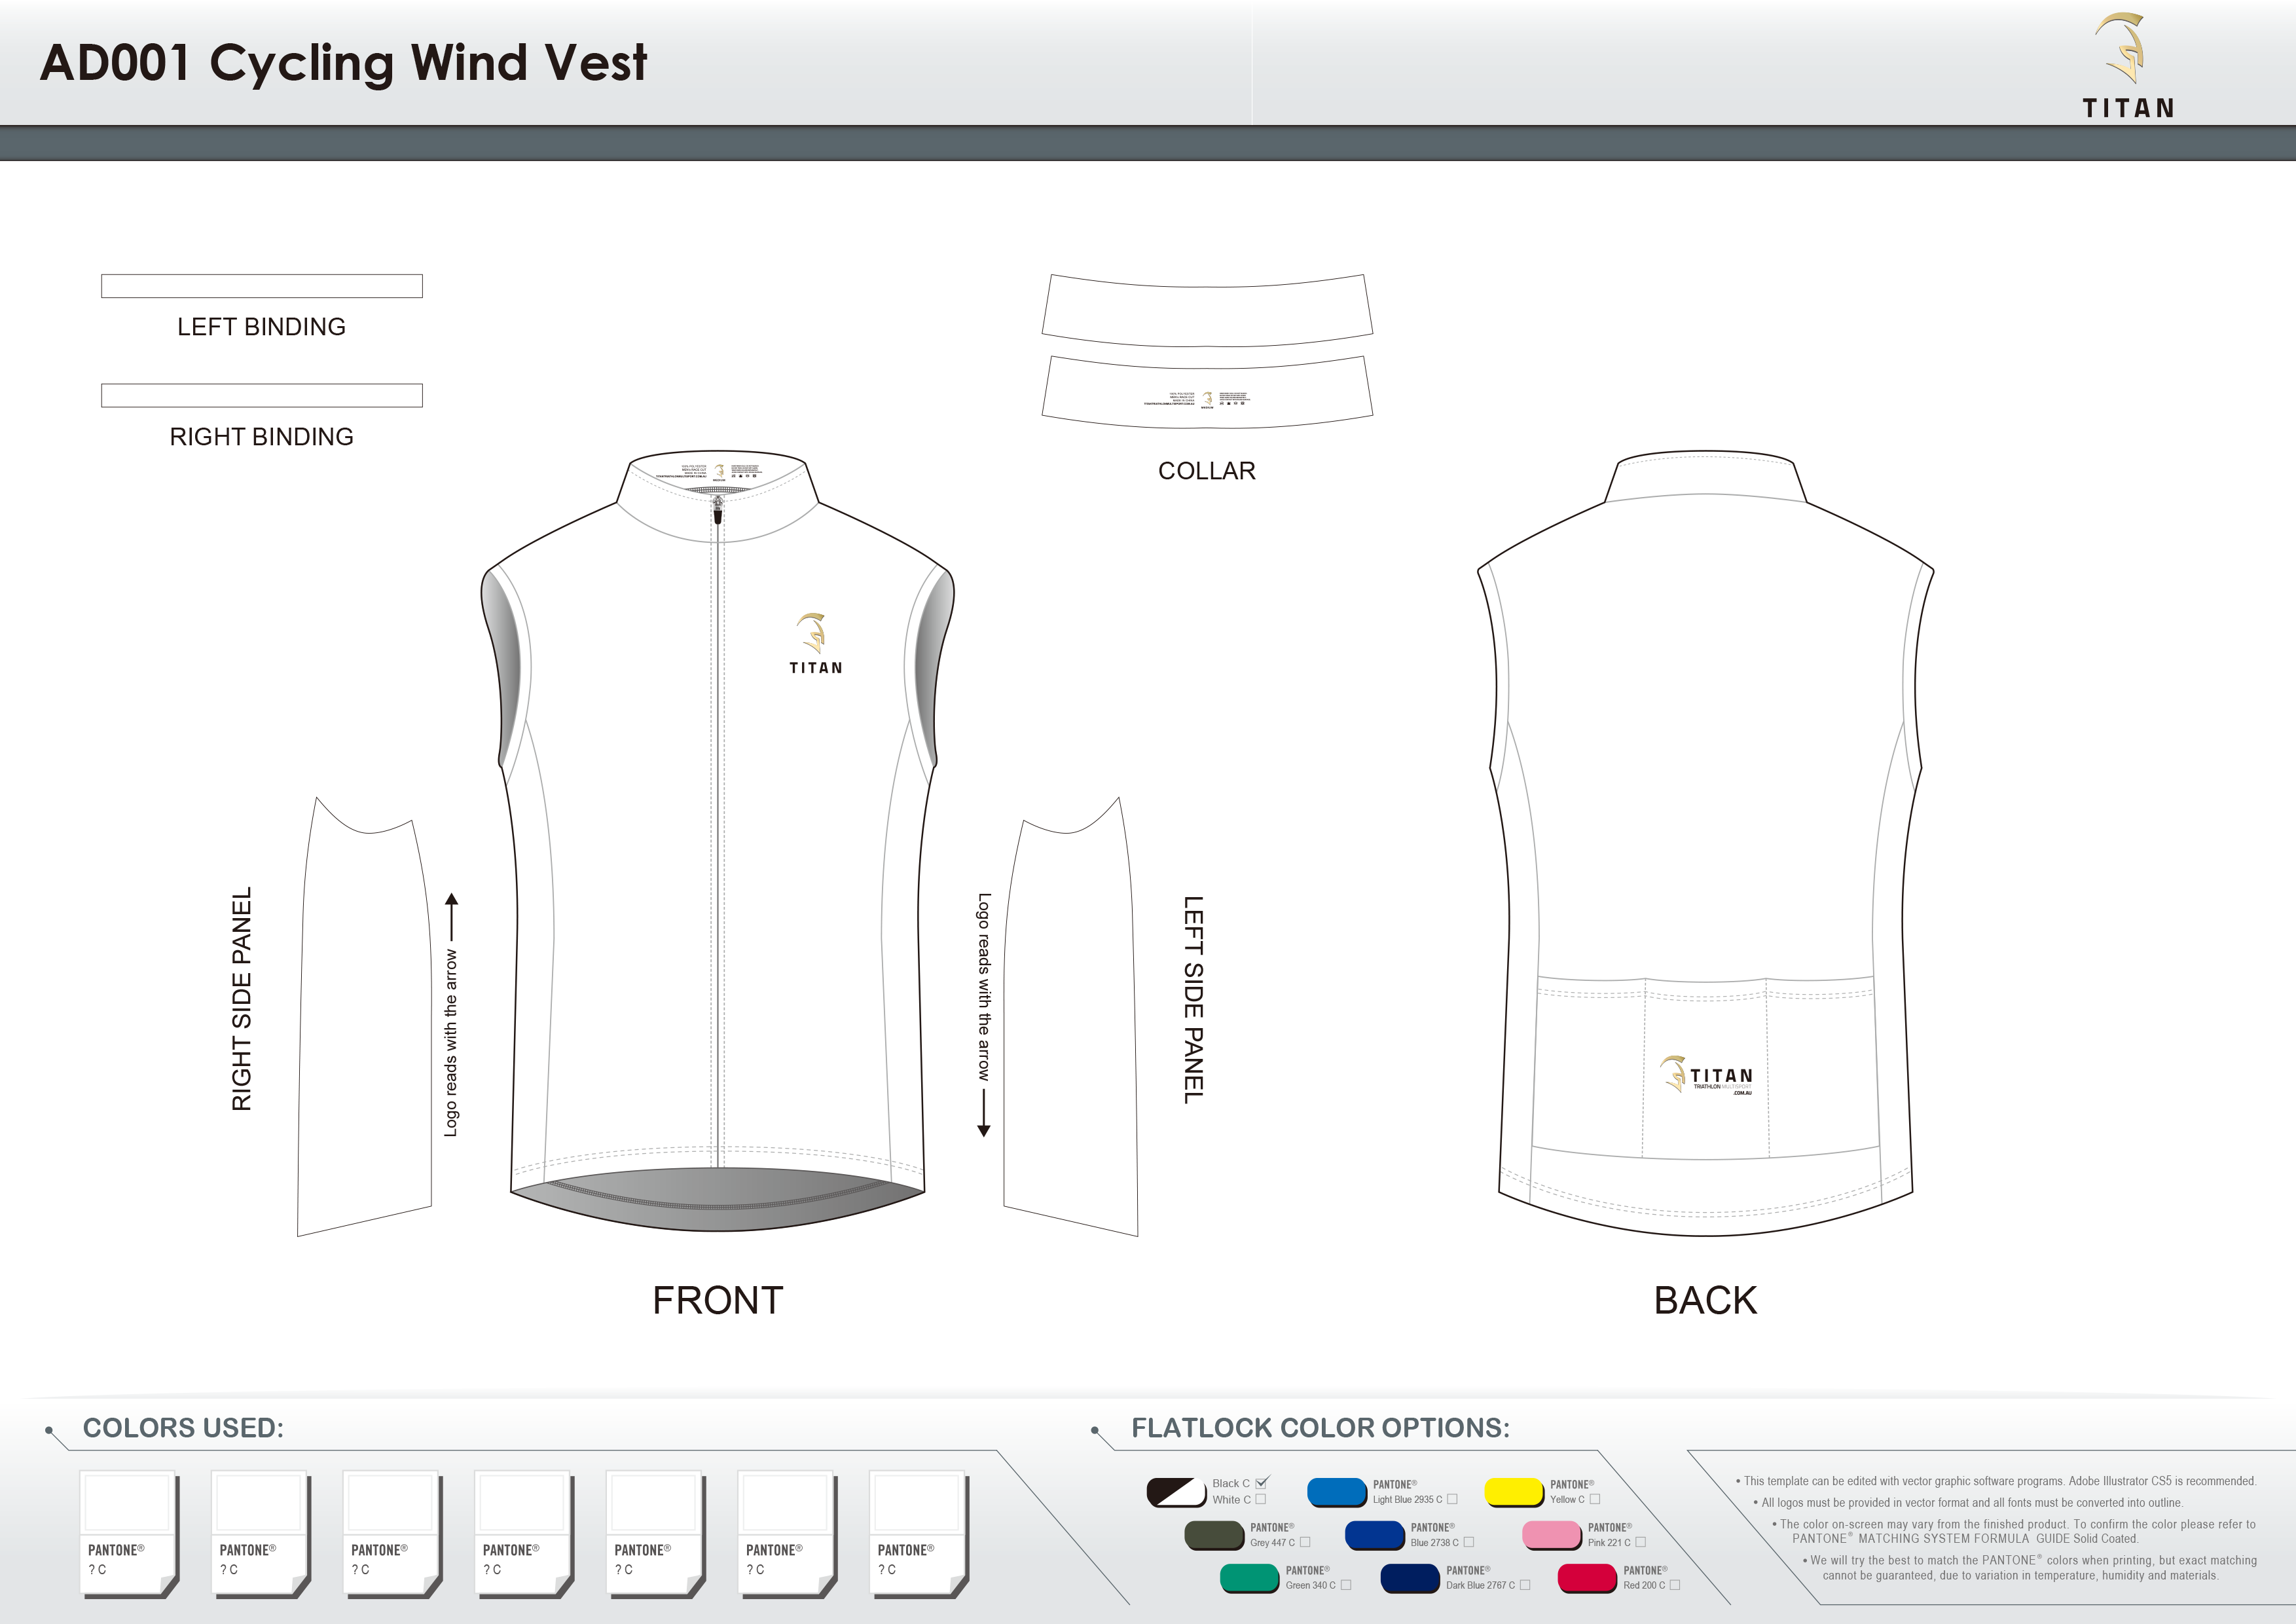 AD001 Cycling Wind Vest